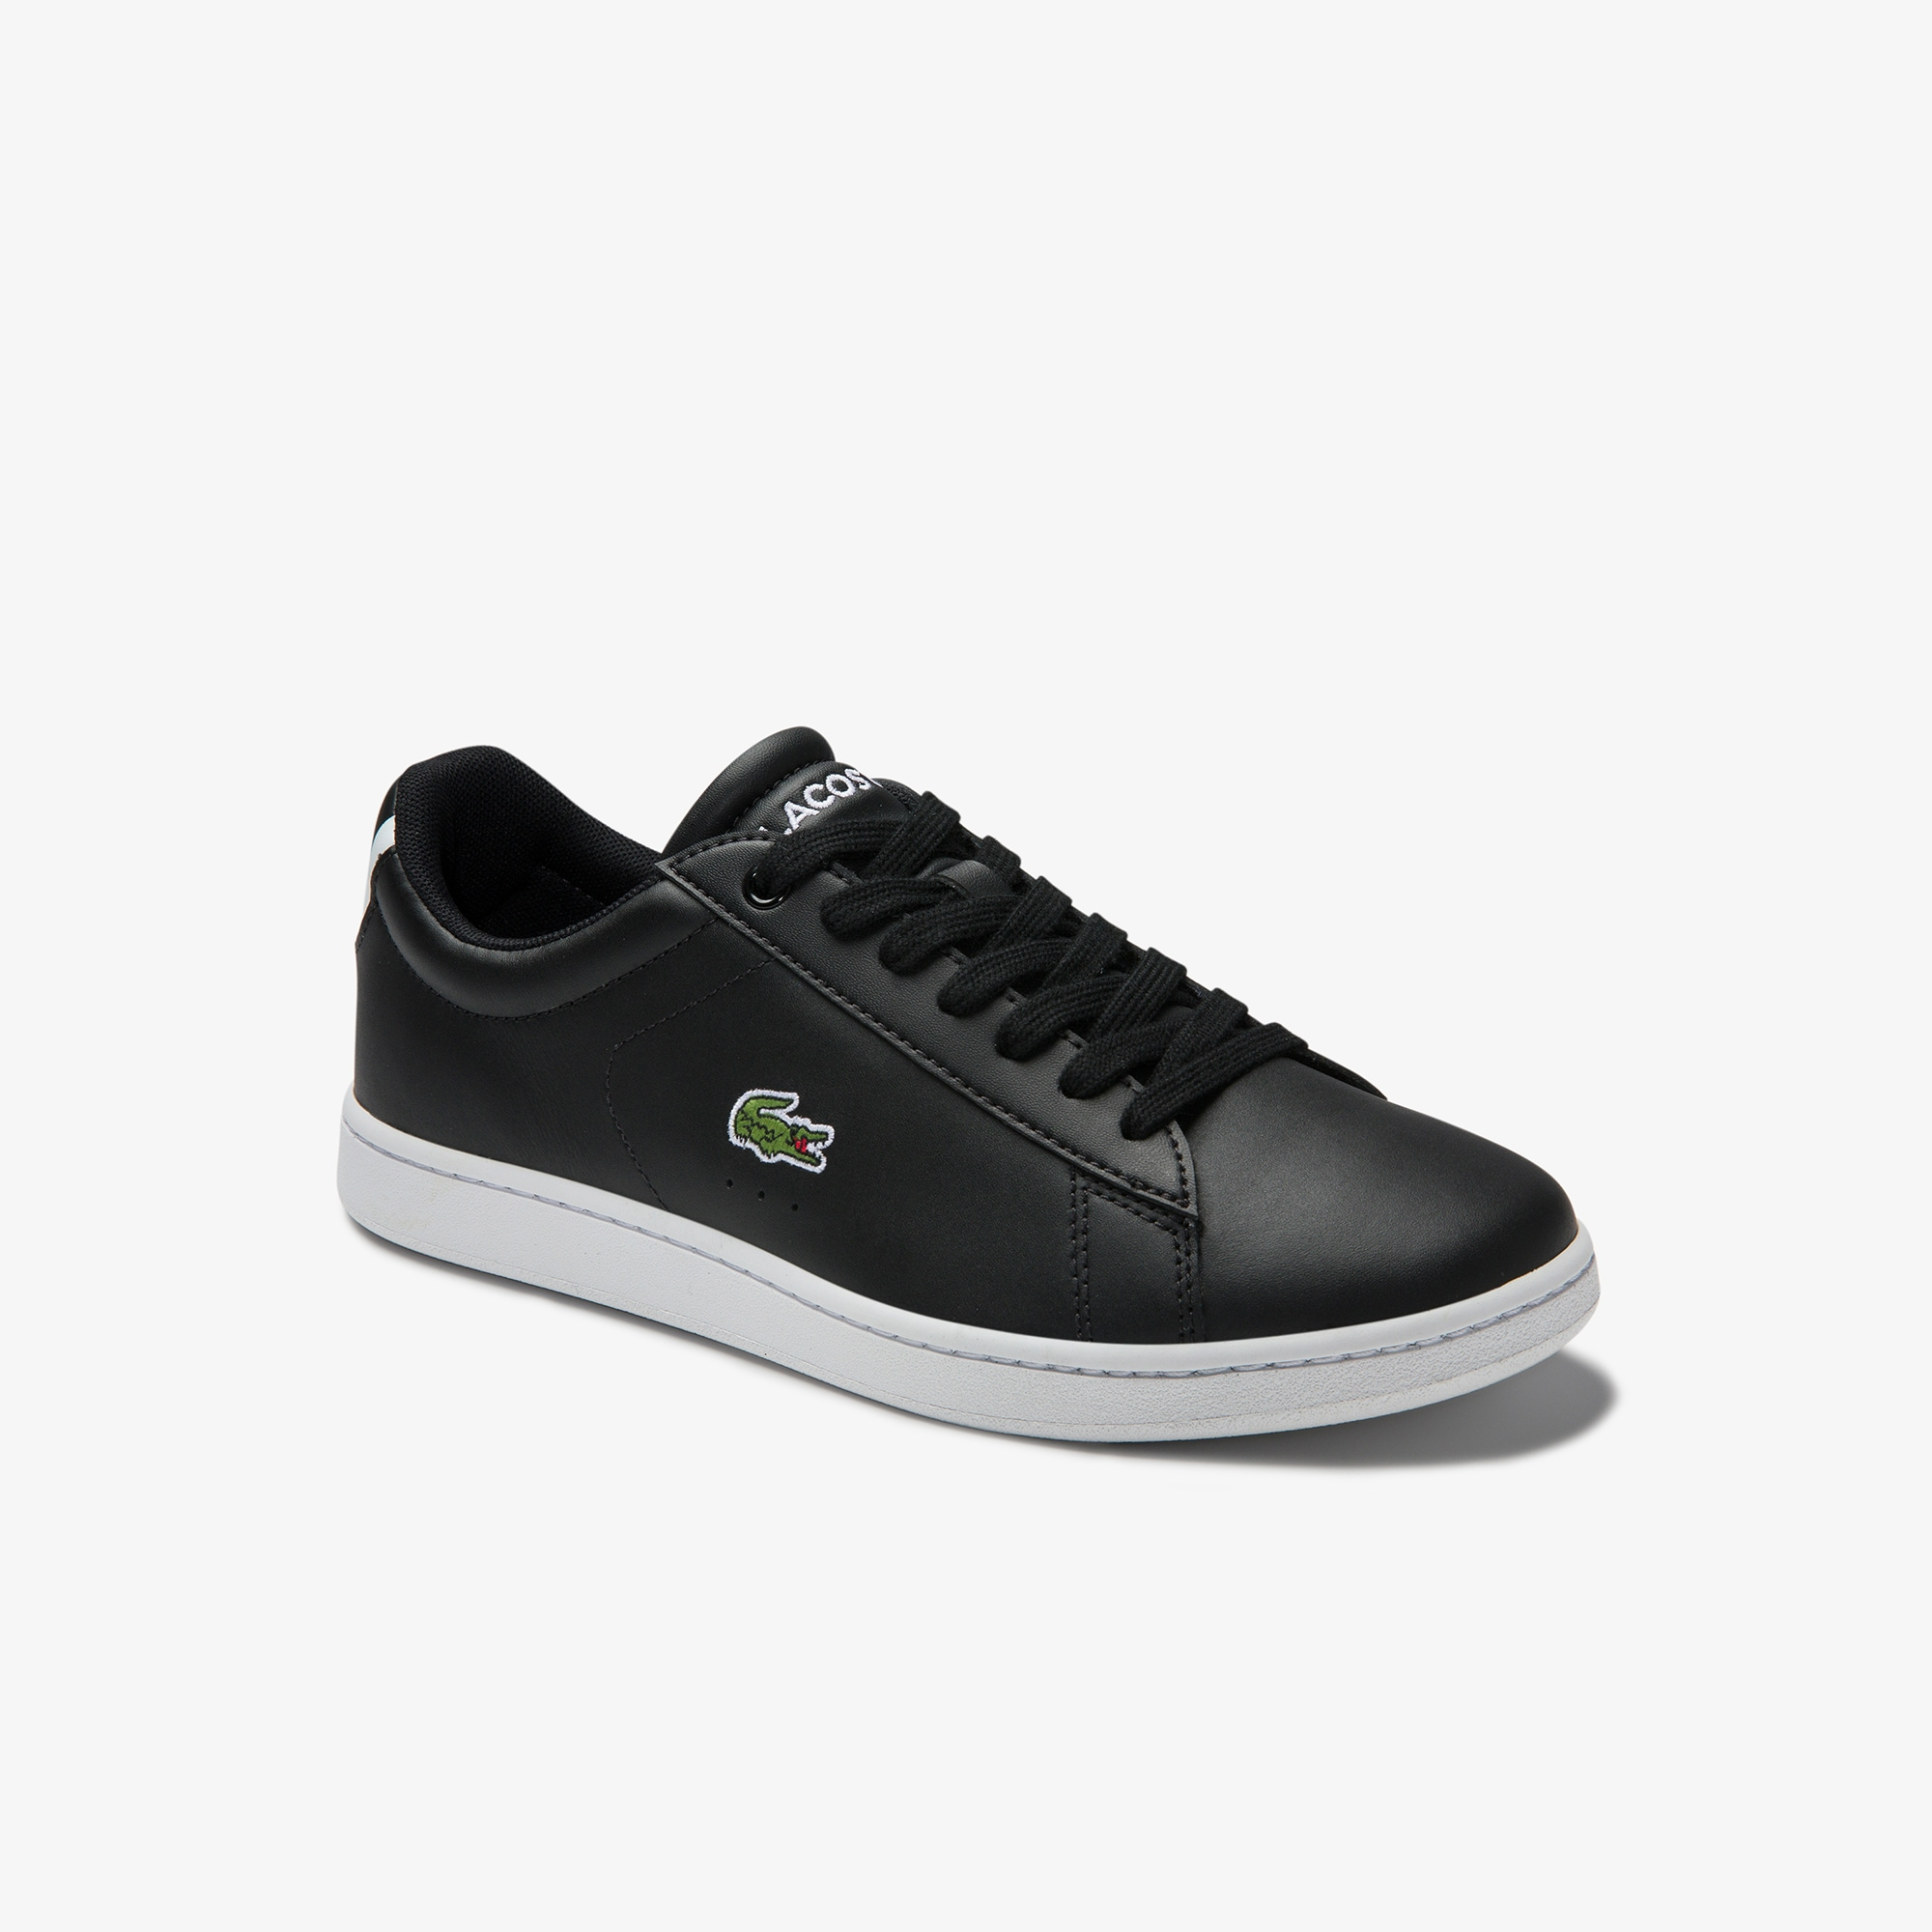 6c3d002fc126 Women s Carnaby Evo BL Leather Trainers ...